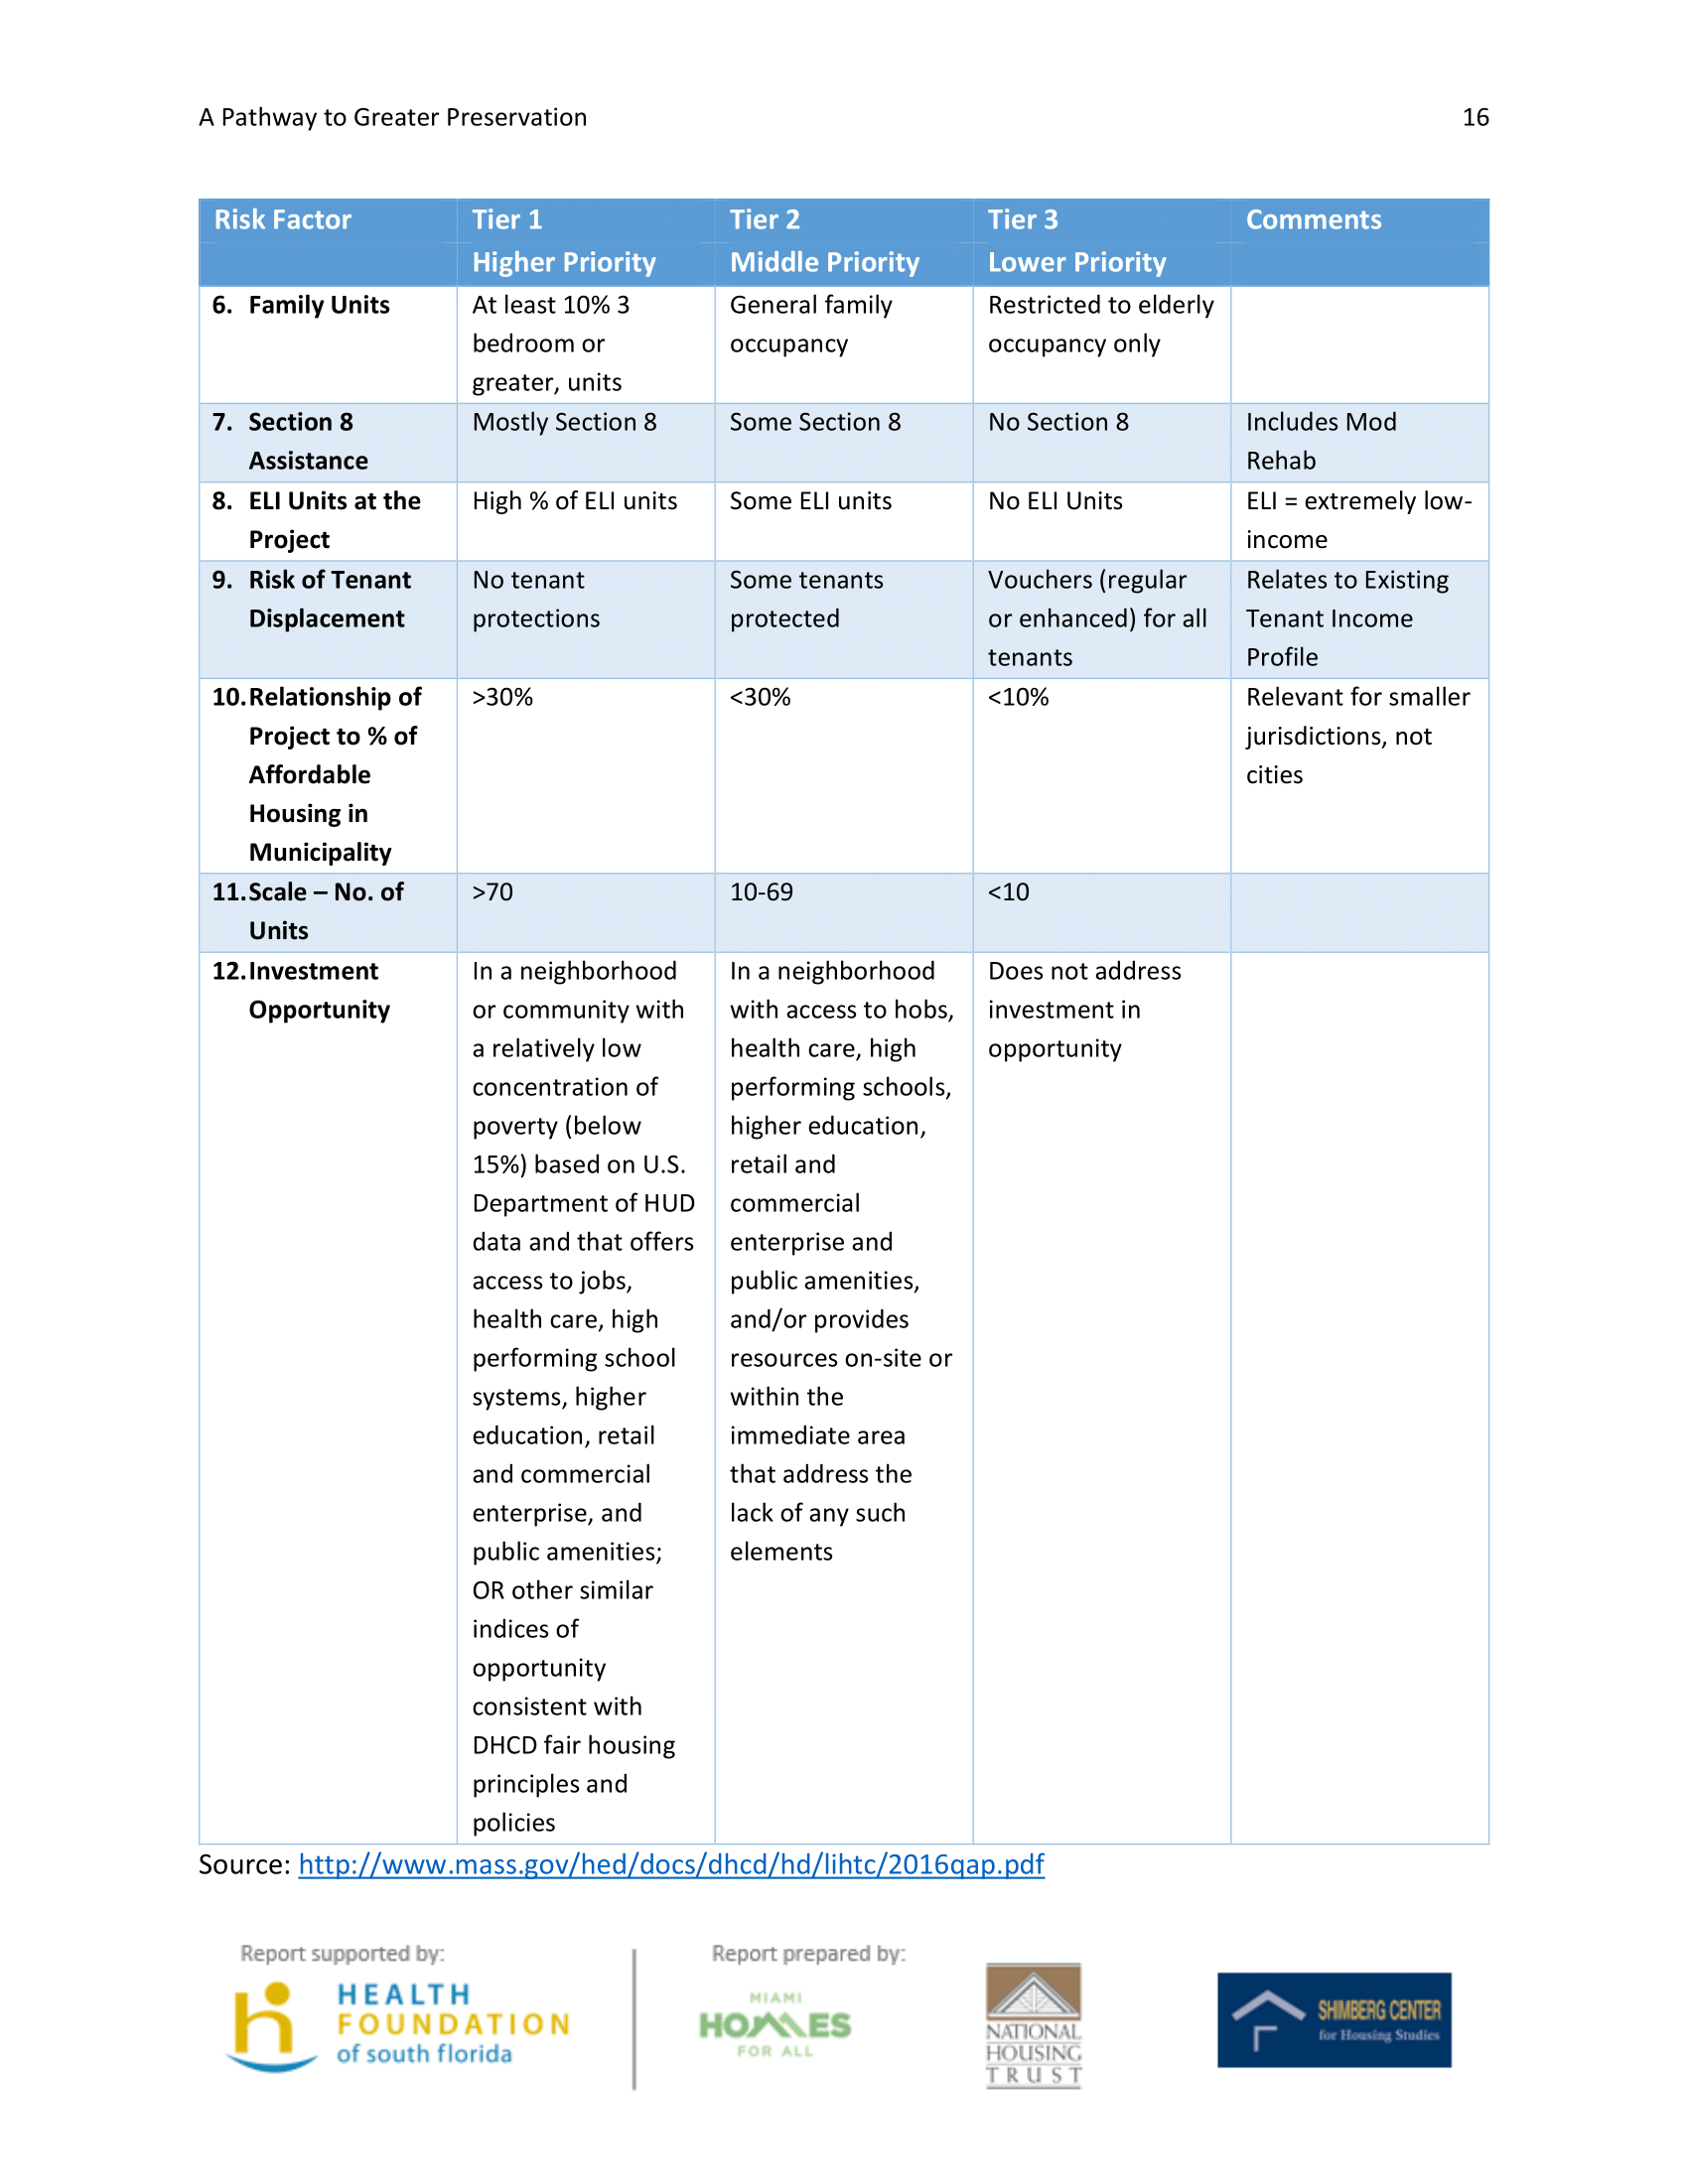 A Pathway to Greater Preservation - February 2018-24.png